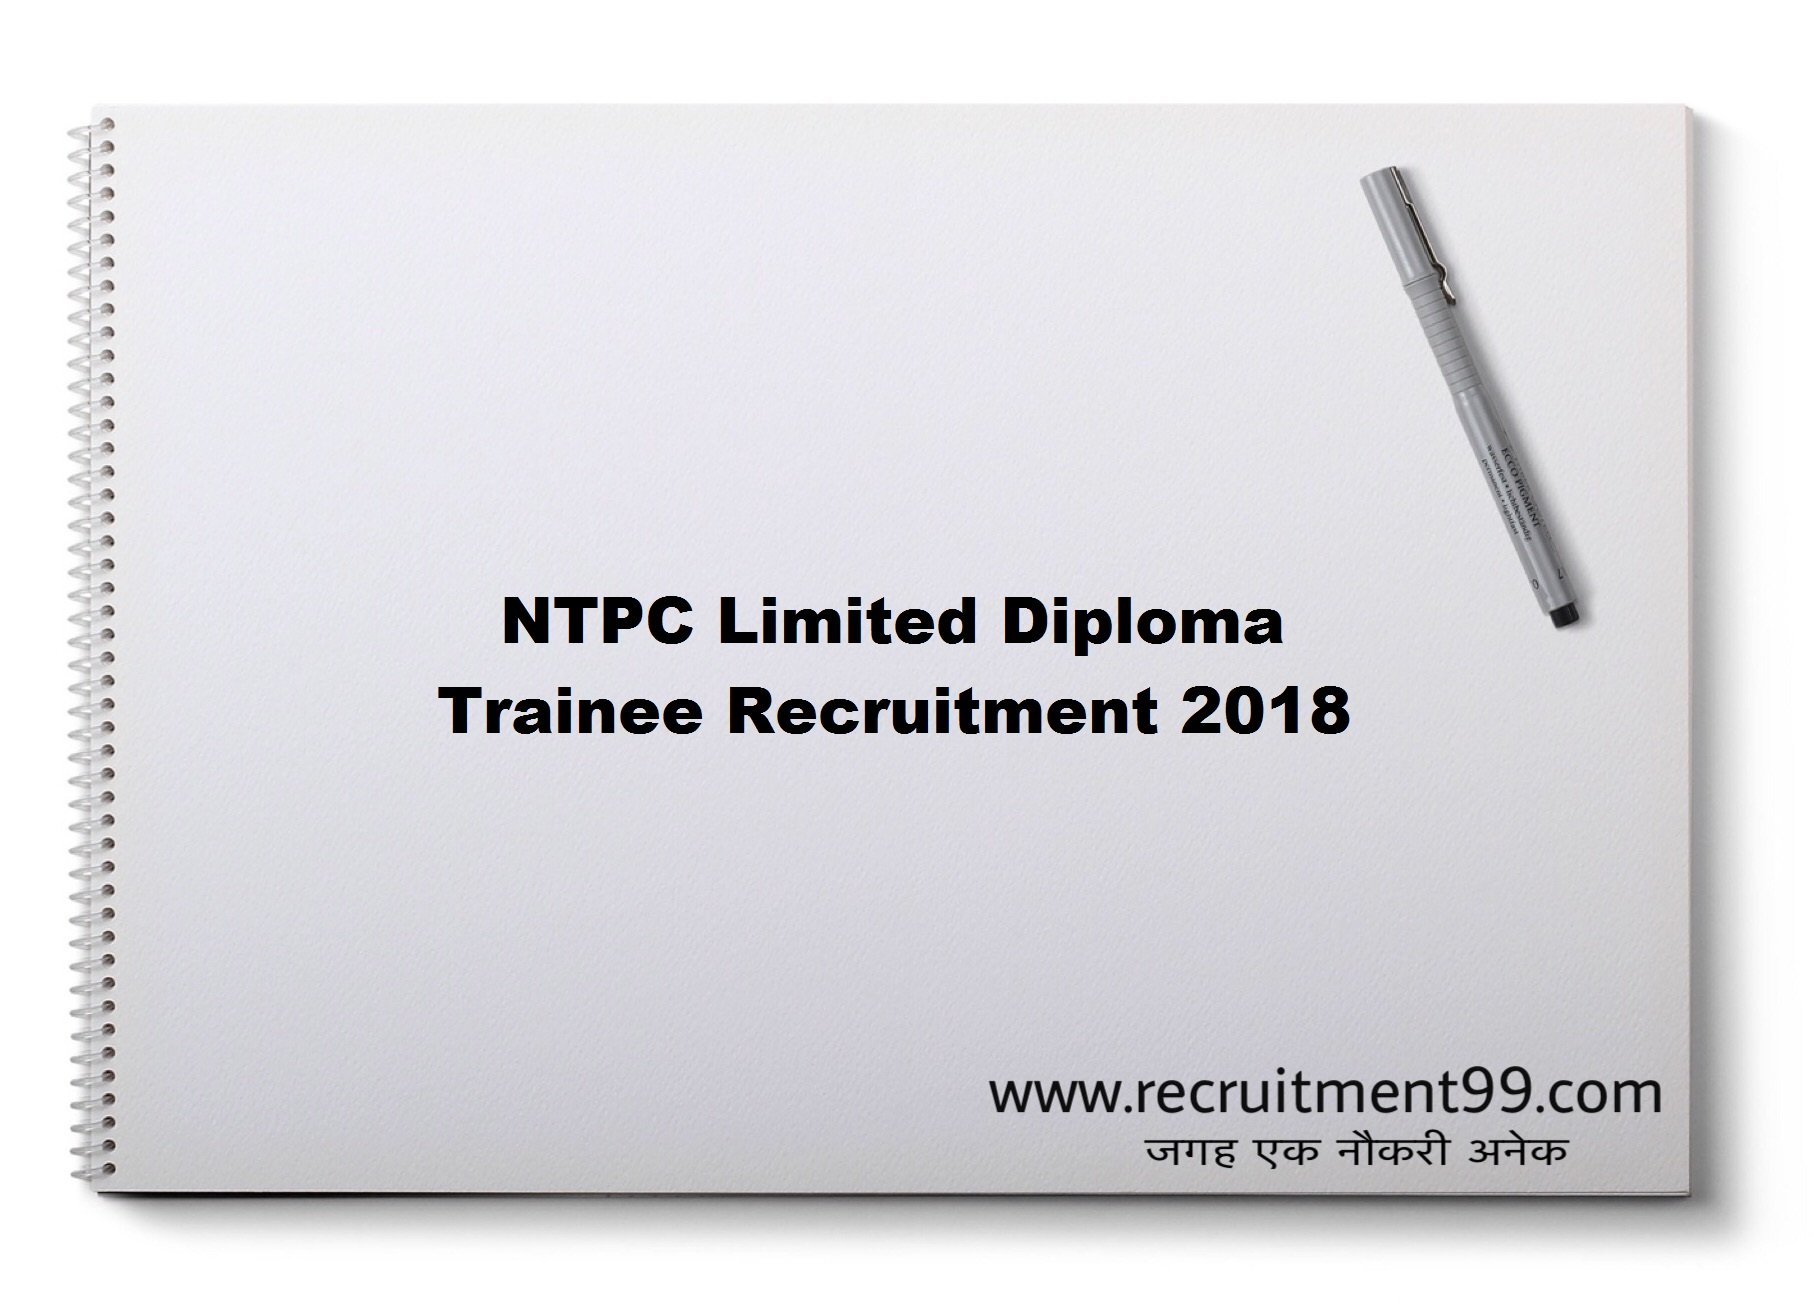 NTPC Limited Diploma Trainee Recruitment Admit Card & Result 2018